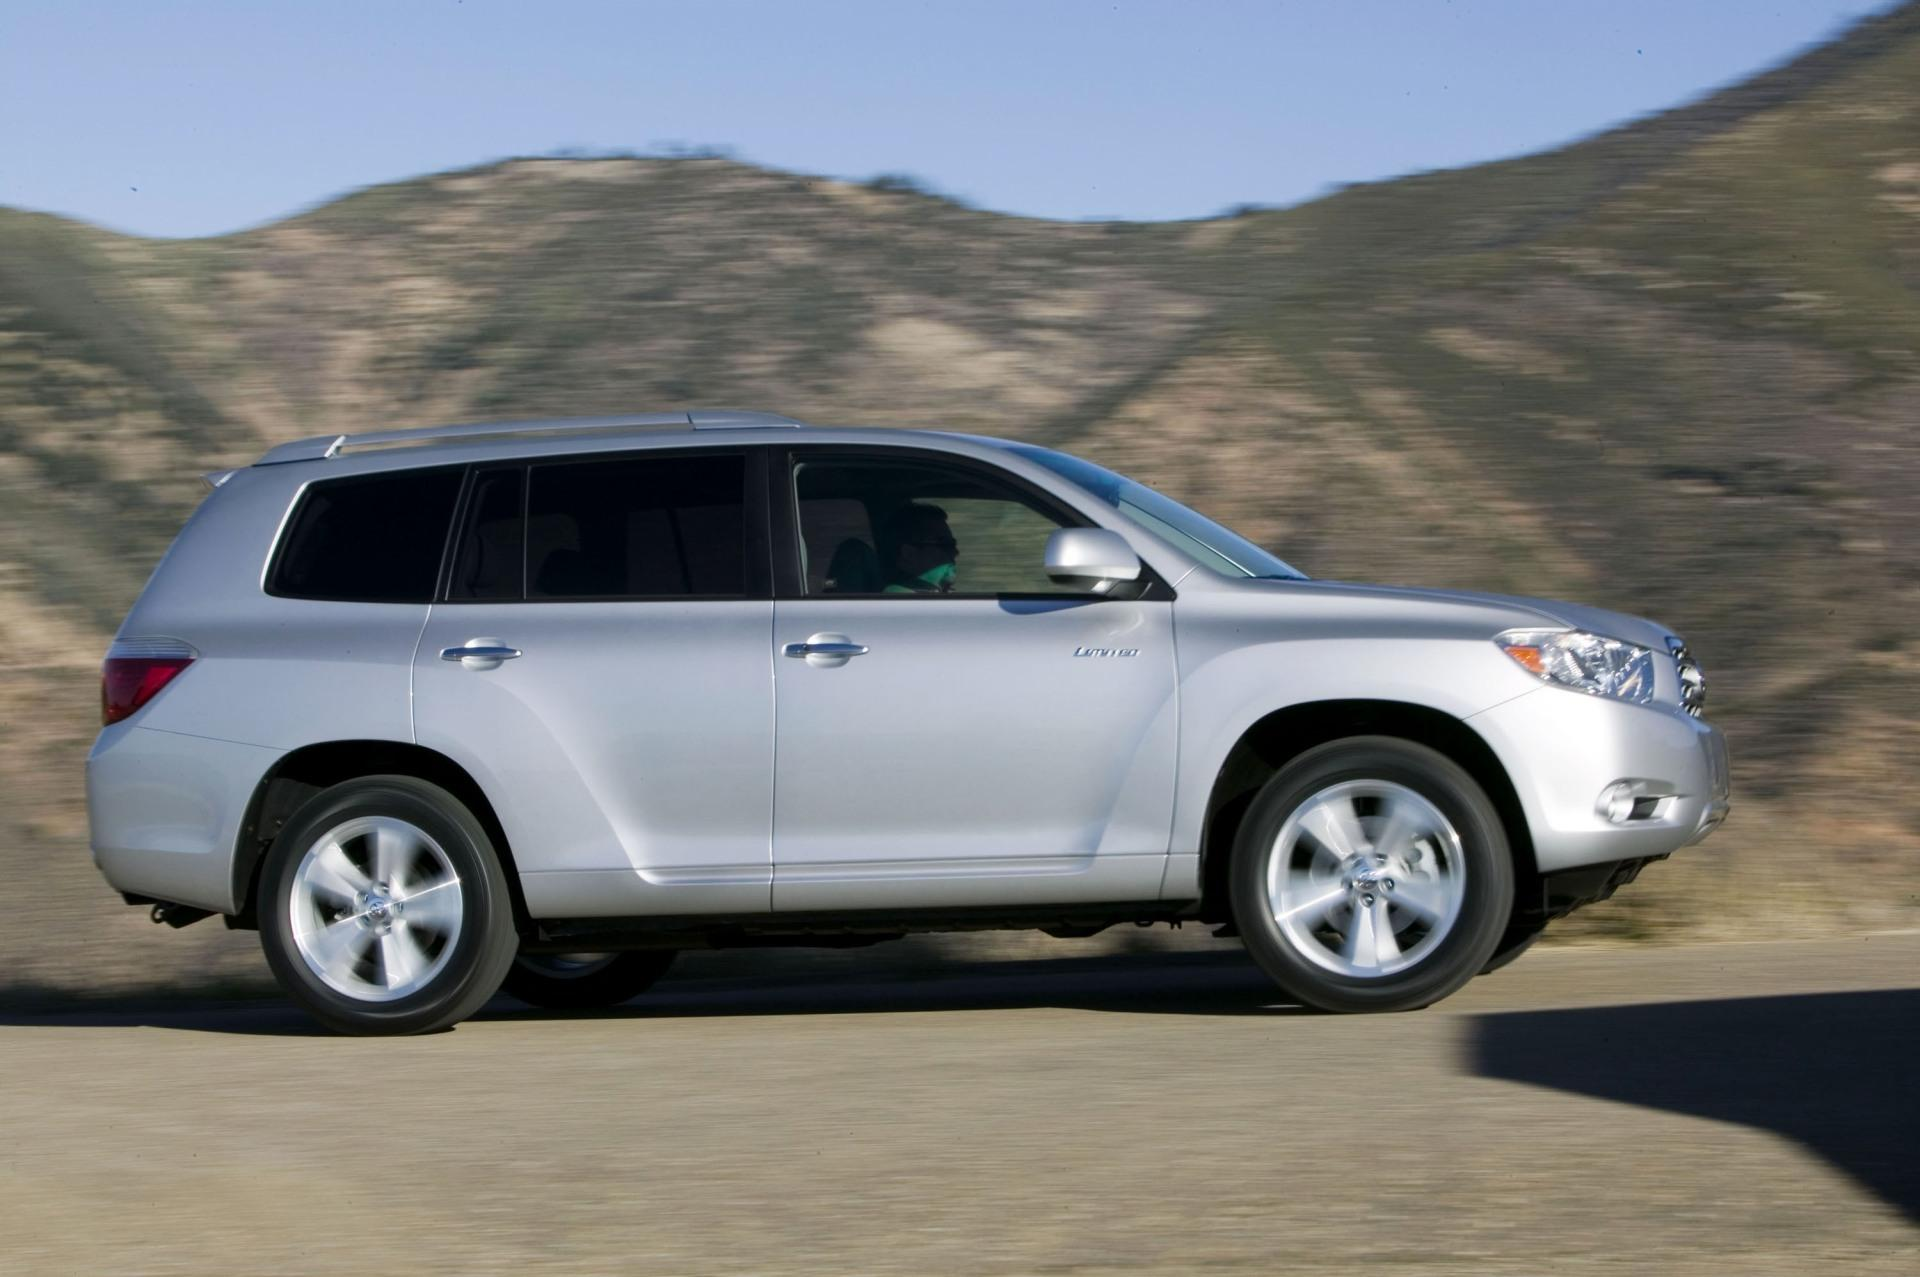 Toyota Ft 1 Concept Price >> 2010 Toyota Highlander Technical Specifications and data. Engine, Dimensions and Mechanical ...